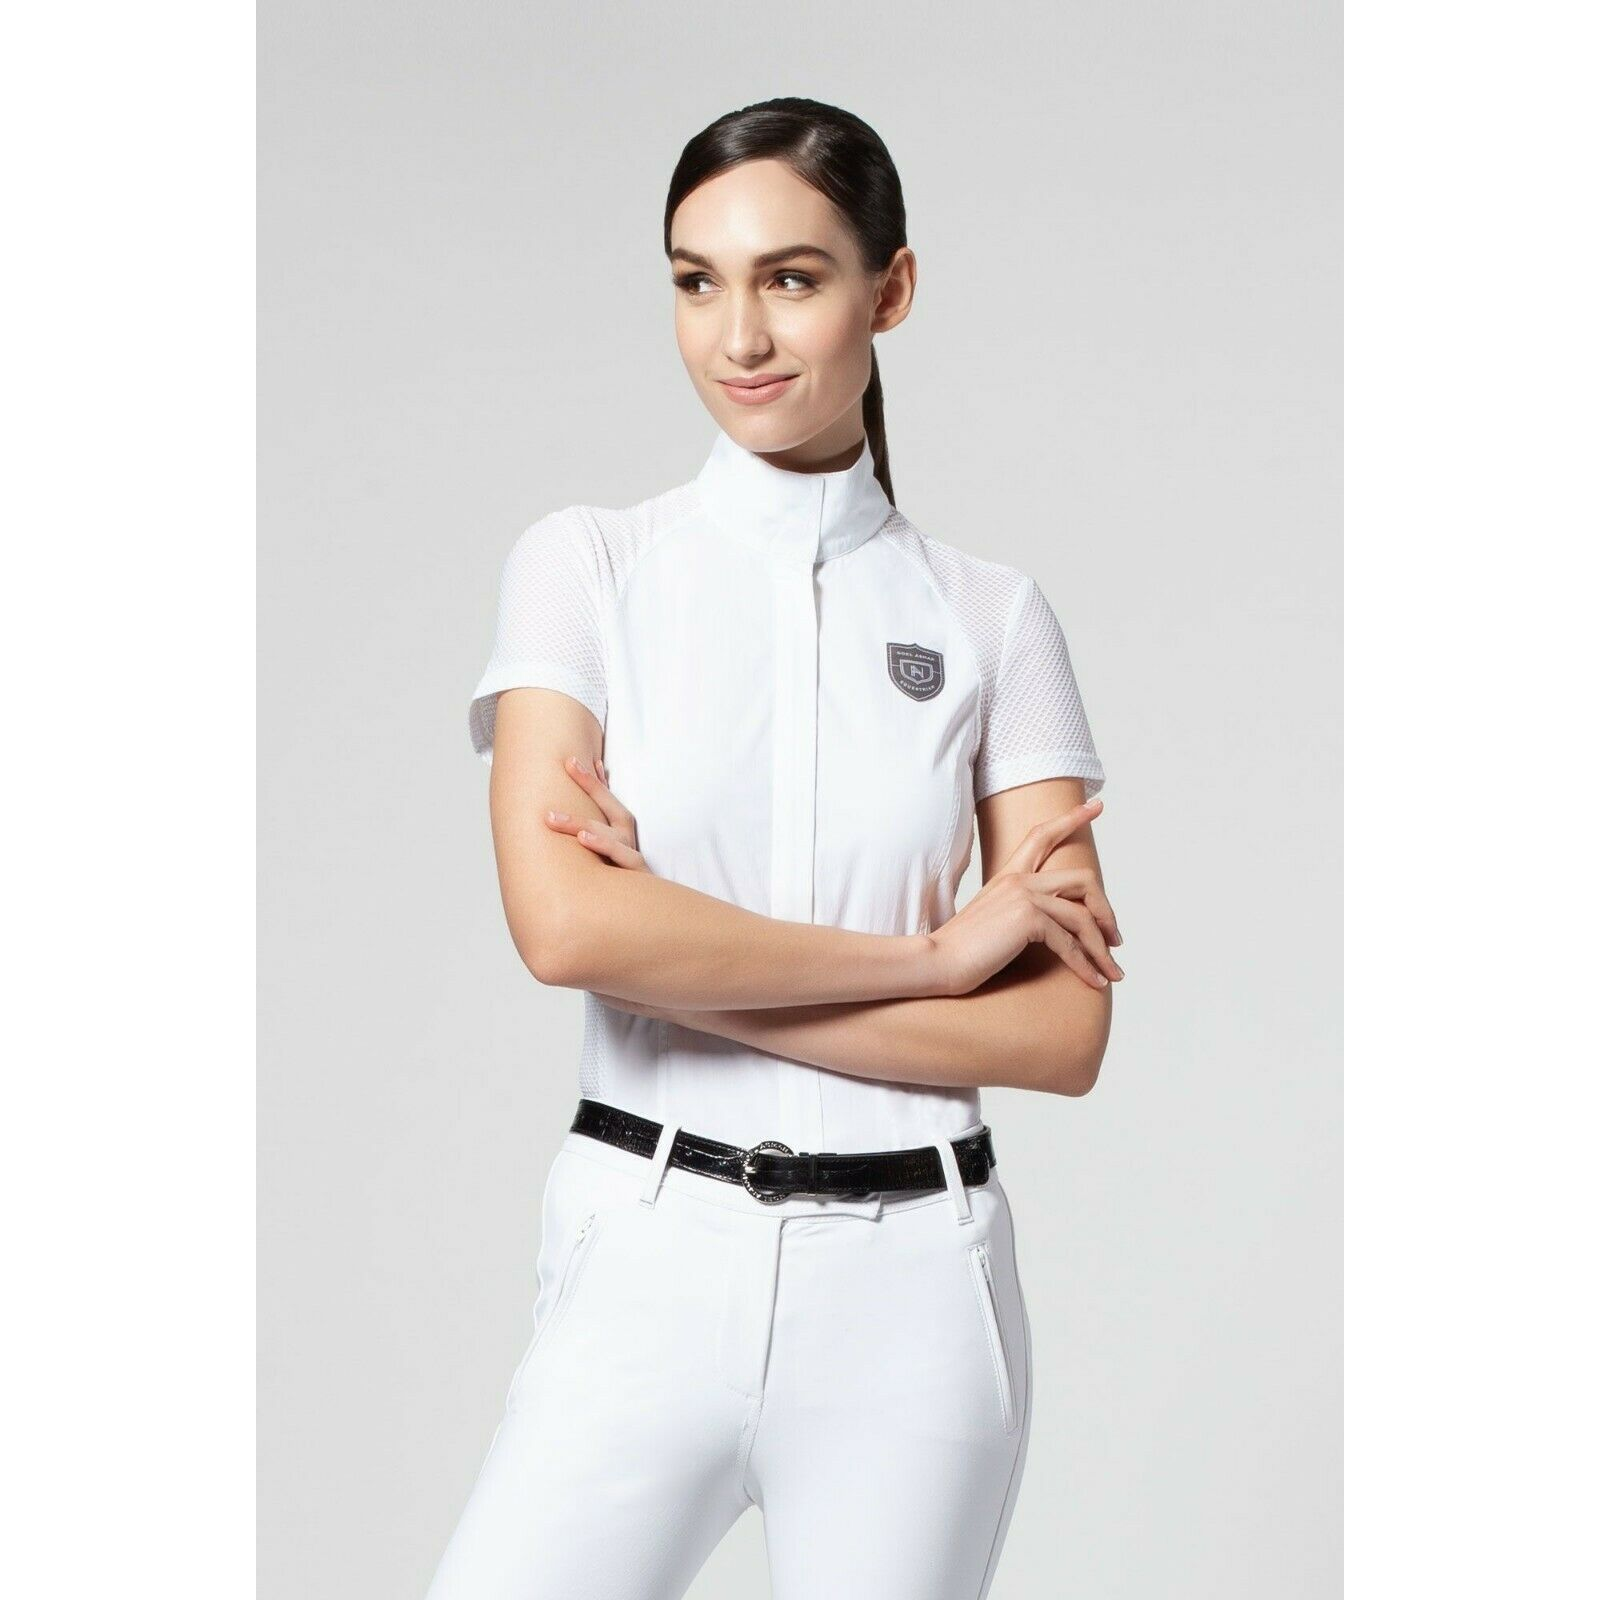 Noel Asmar Ladies  Iris Short Sleeve Show Shirt - Different colors and Sizes  latest styles